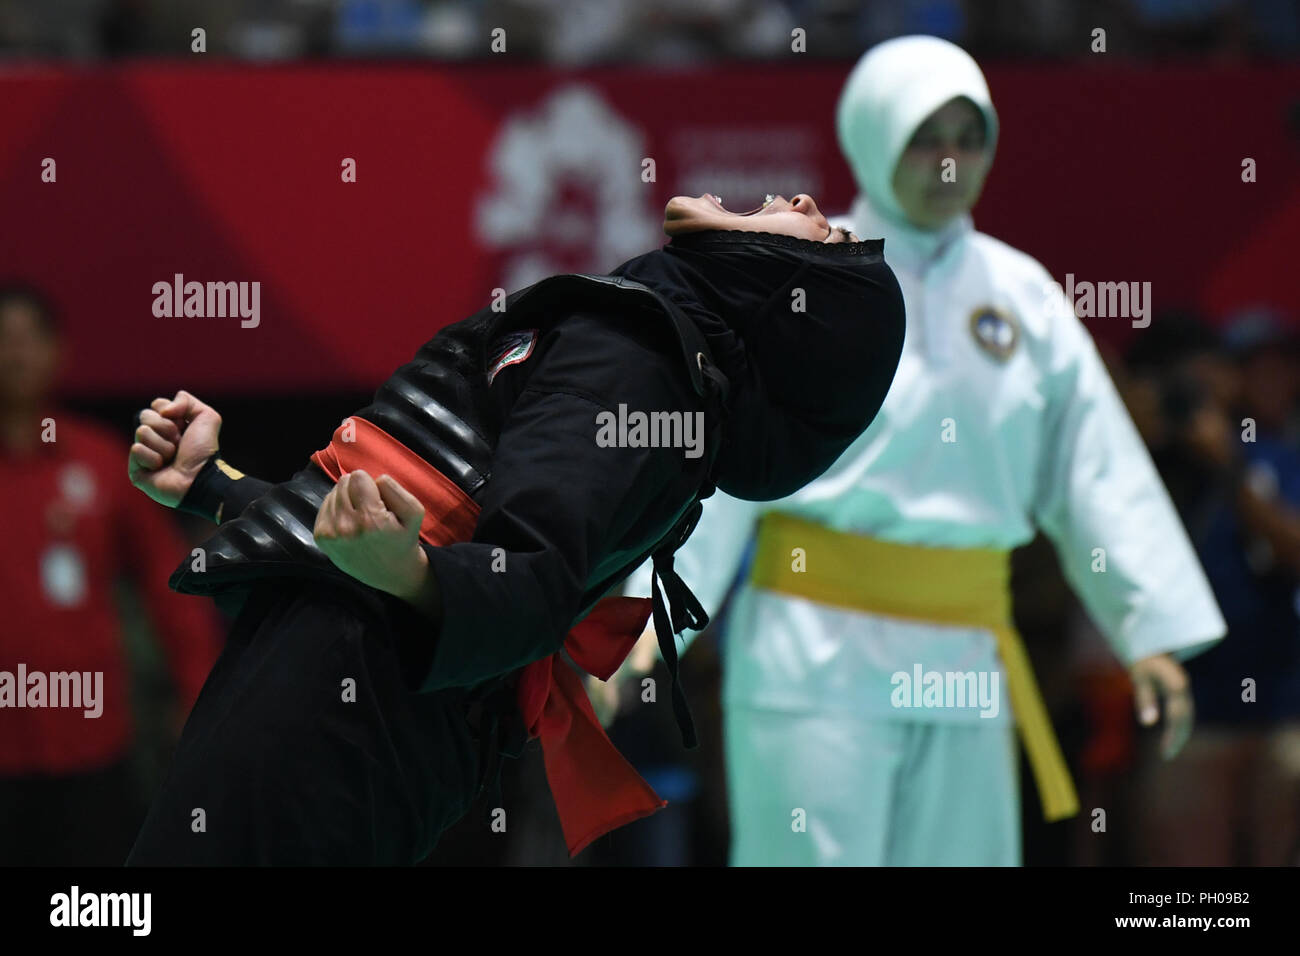 Jakarta, Indonesia. 29th Aug, 2018. Pipiet Kamelia of Indonesia celebrates after the Pencak Silat Men's 60kg to 65kg gold medal match agaisnt Nguyen Thi Cam Nhi of Vietnam at the 18th Asian Games in Jakarta, Indonesia, Aug. 29, 2018. Credit: Pan Yulong/Xinhua/Alamy Live News - Stock Image